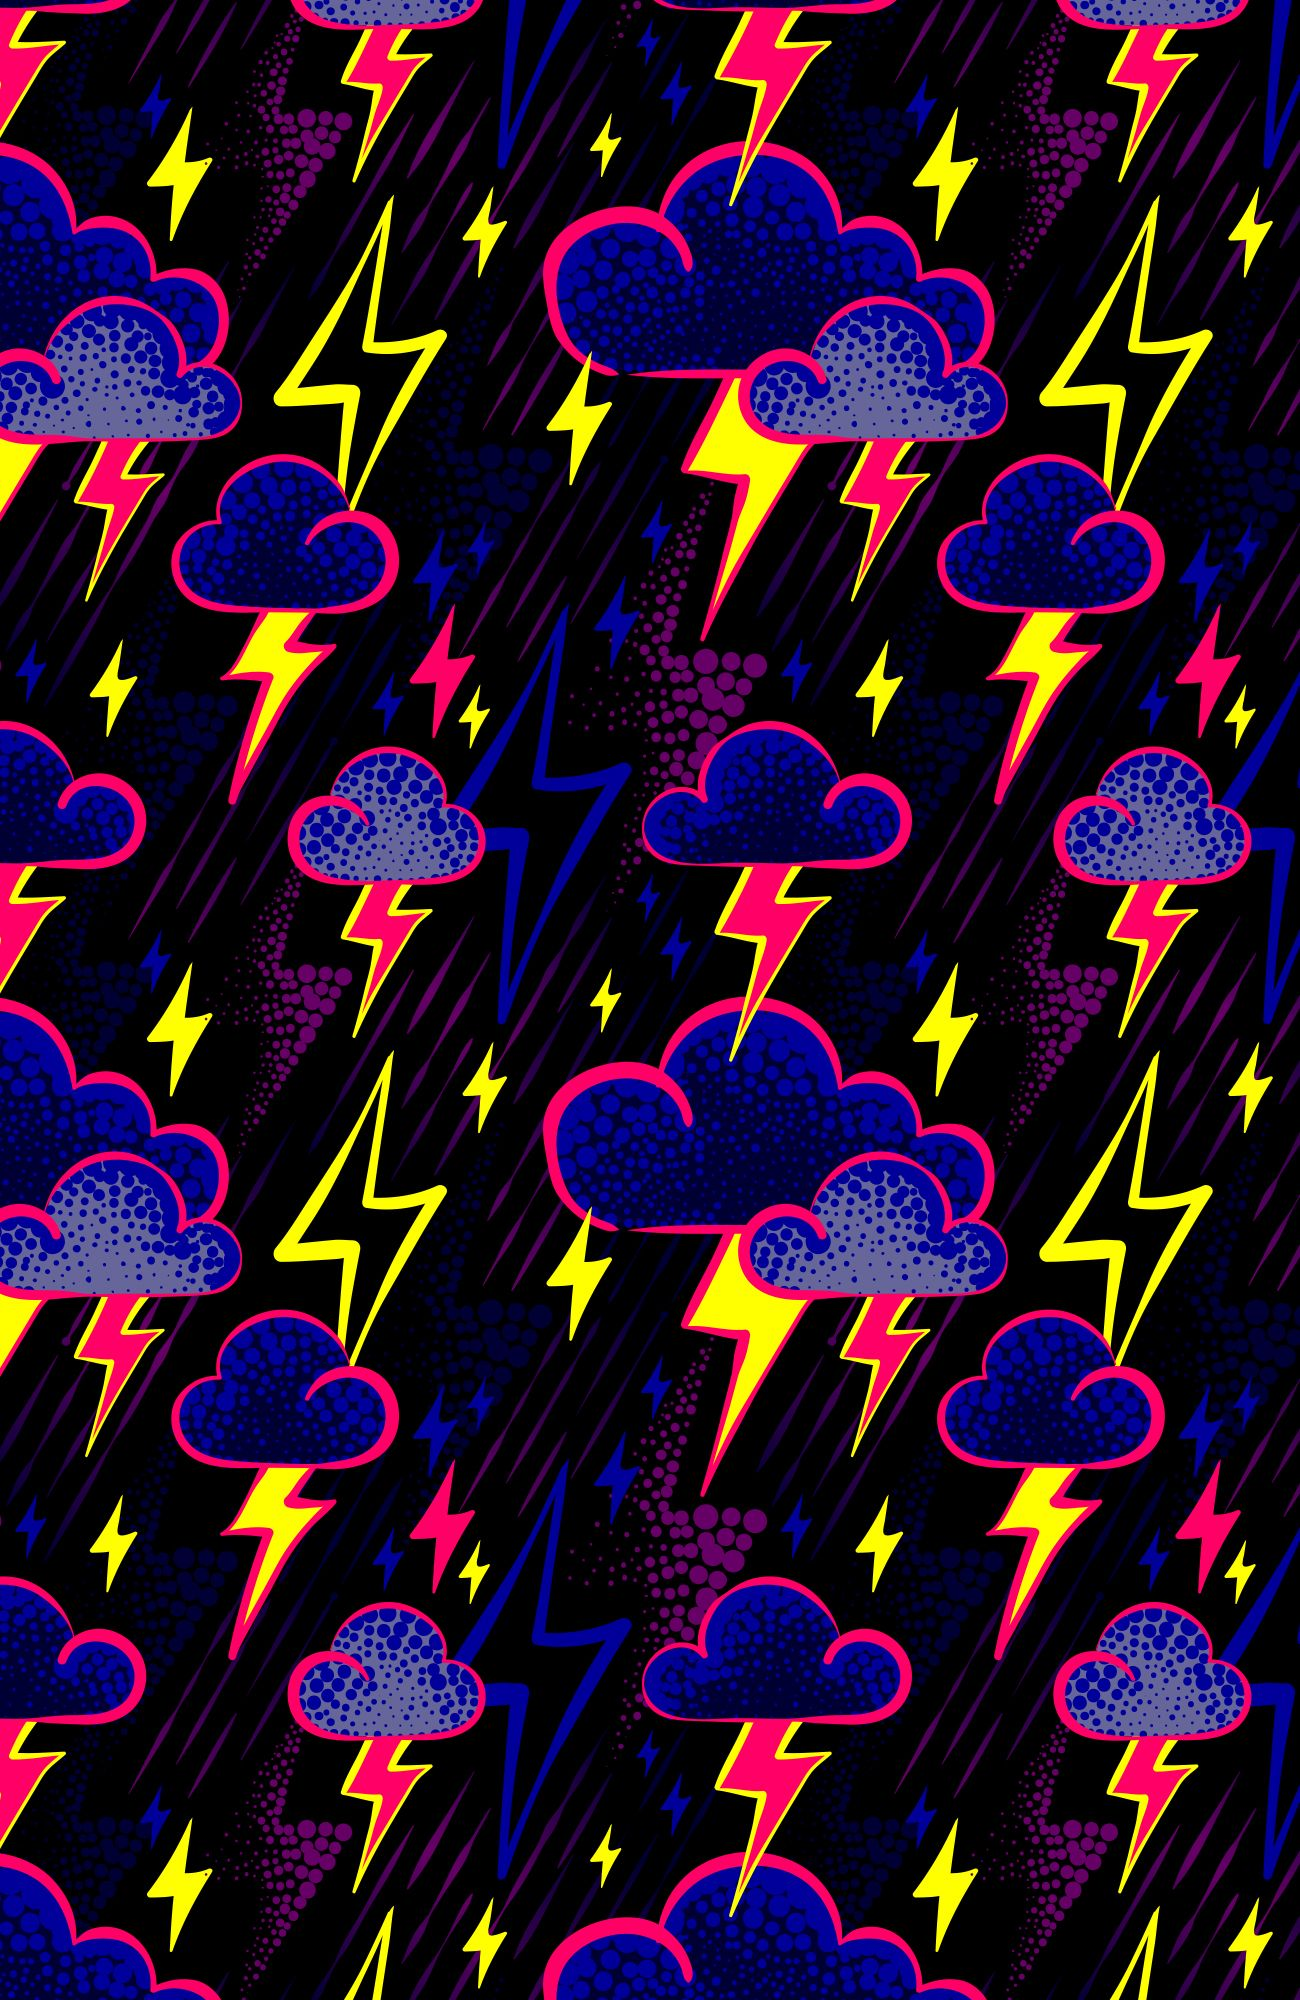 Lightning bolt storm clouds pattern print repeat fabric